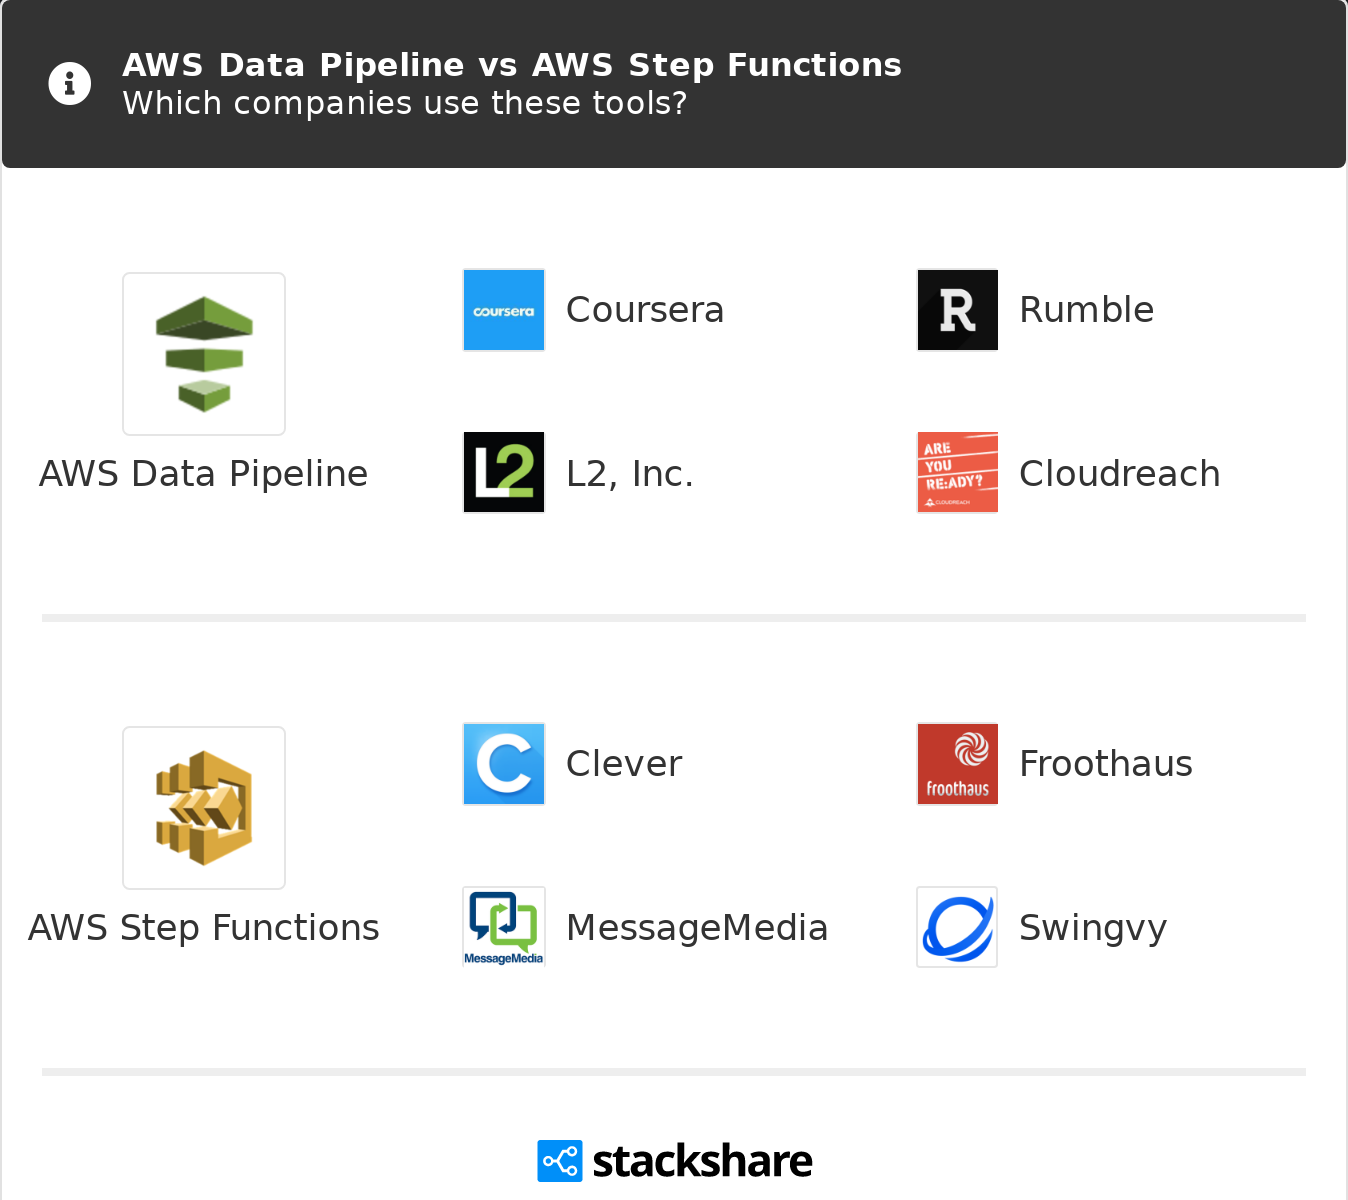 AWS Data Pipeline vs AWS Step Functions | What are the differences?